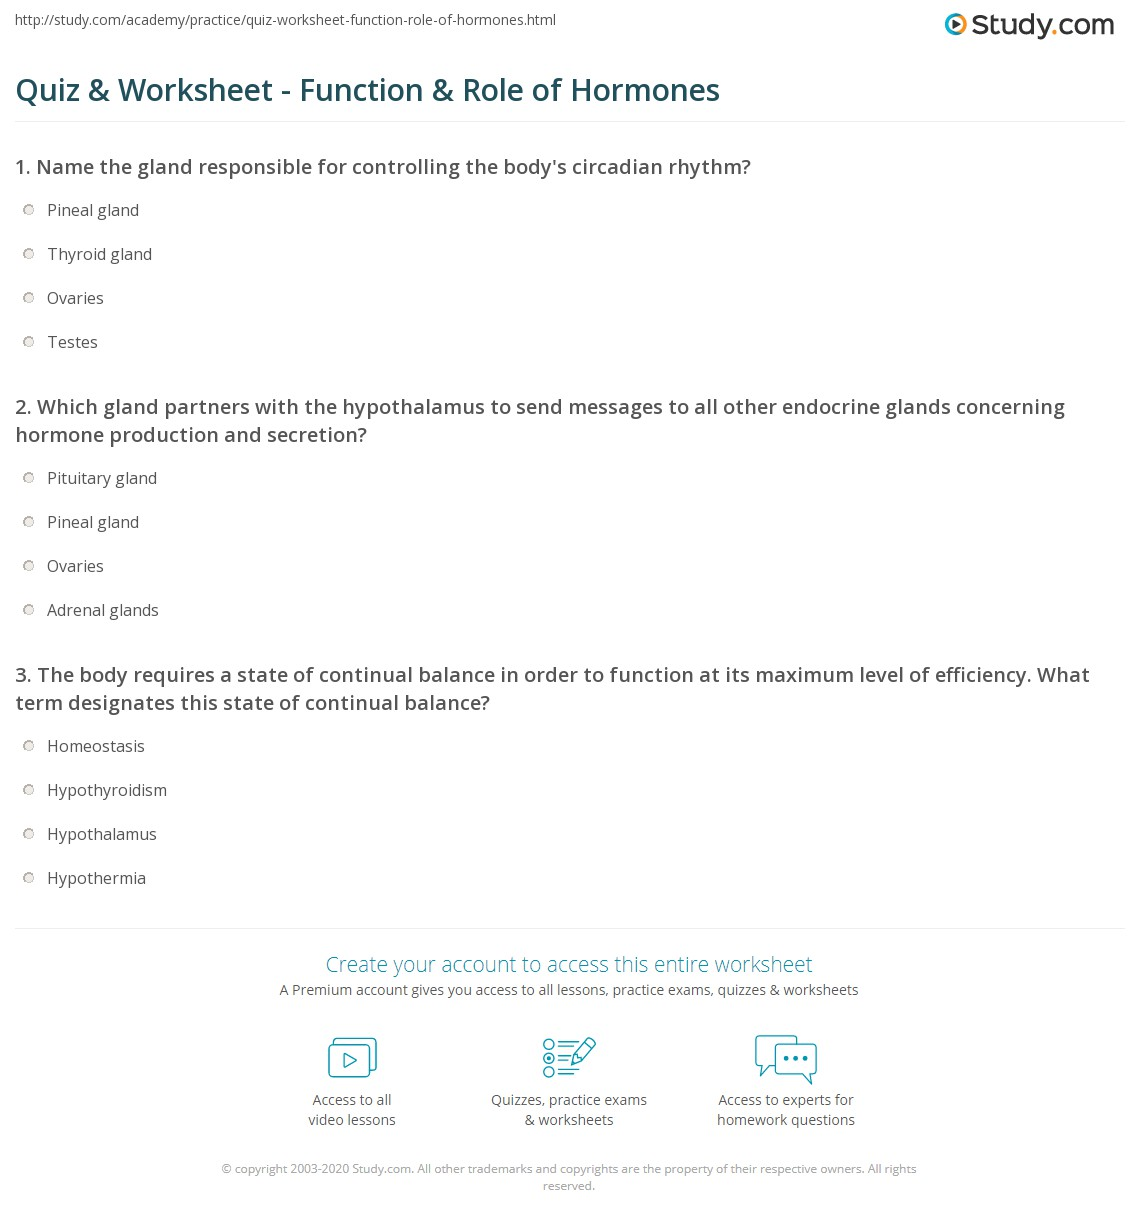 Quiz & Worksheet - Function & Role of Hormones | Study.com